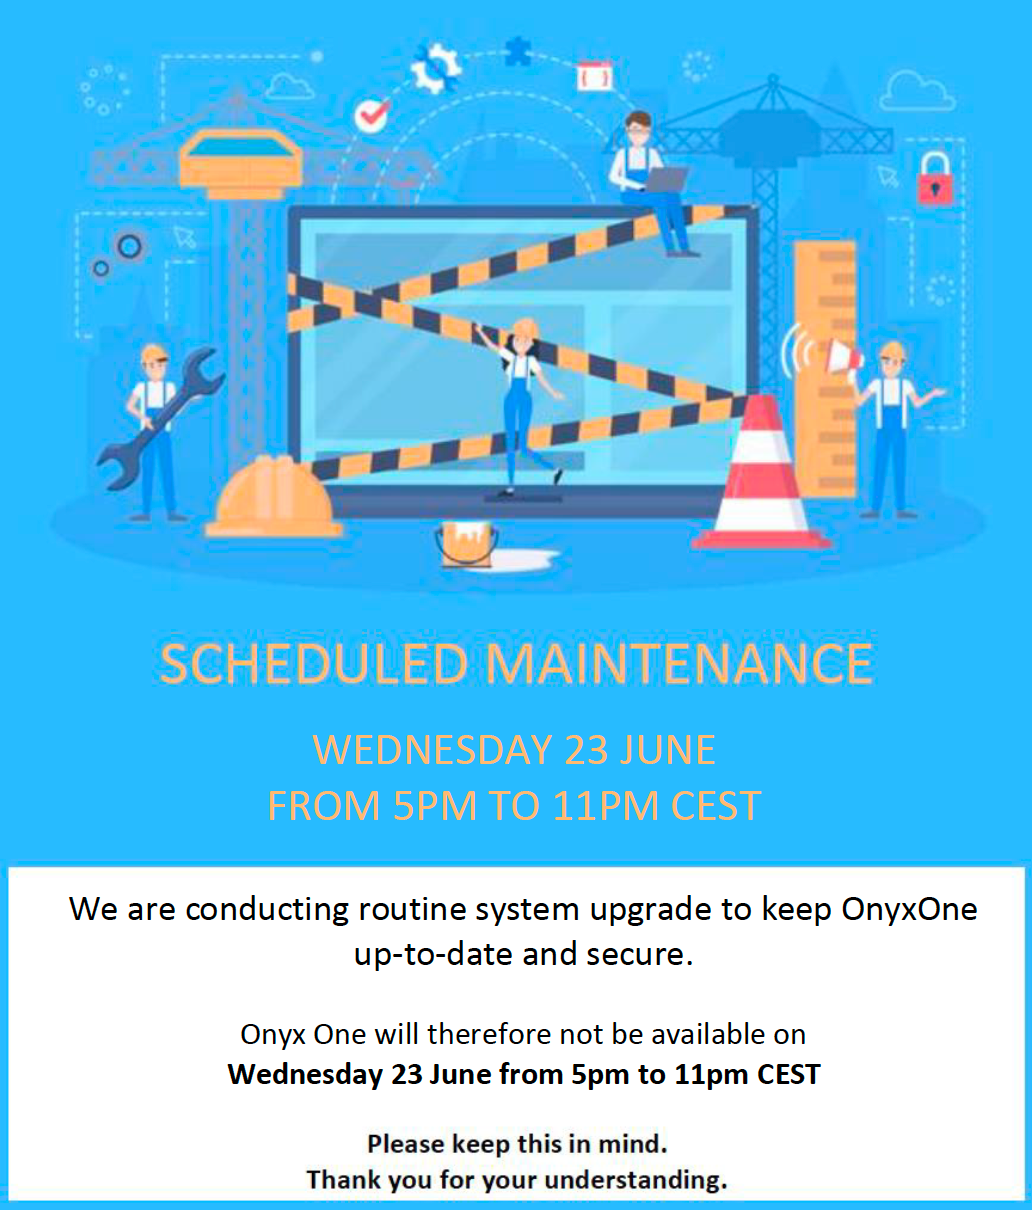 SCHEDULED MAINTENANCE on WEDNESDAY 23 JUNE from 5PM to 11PM CEST